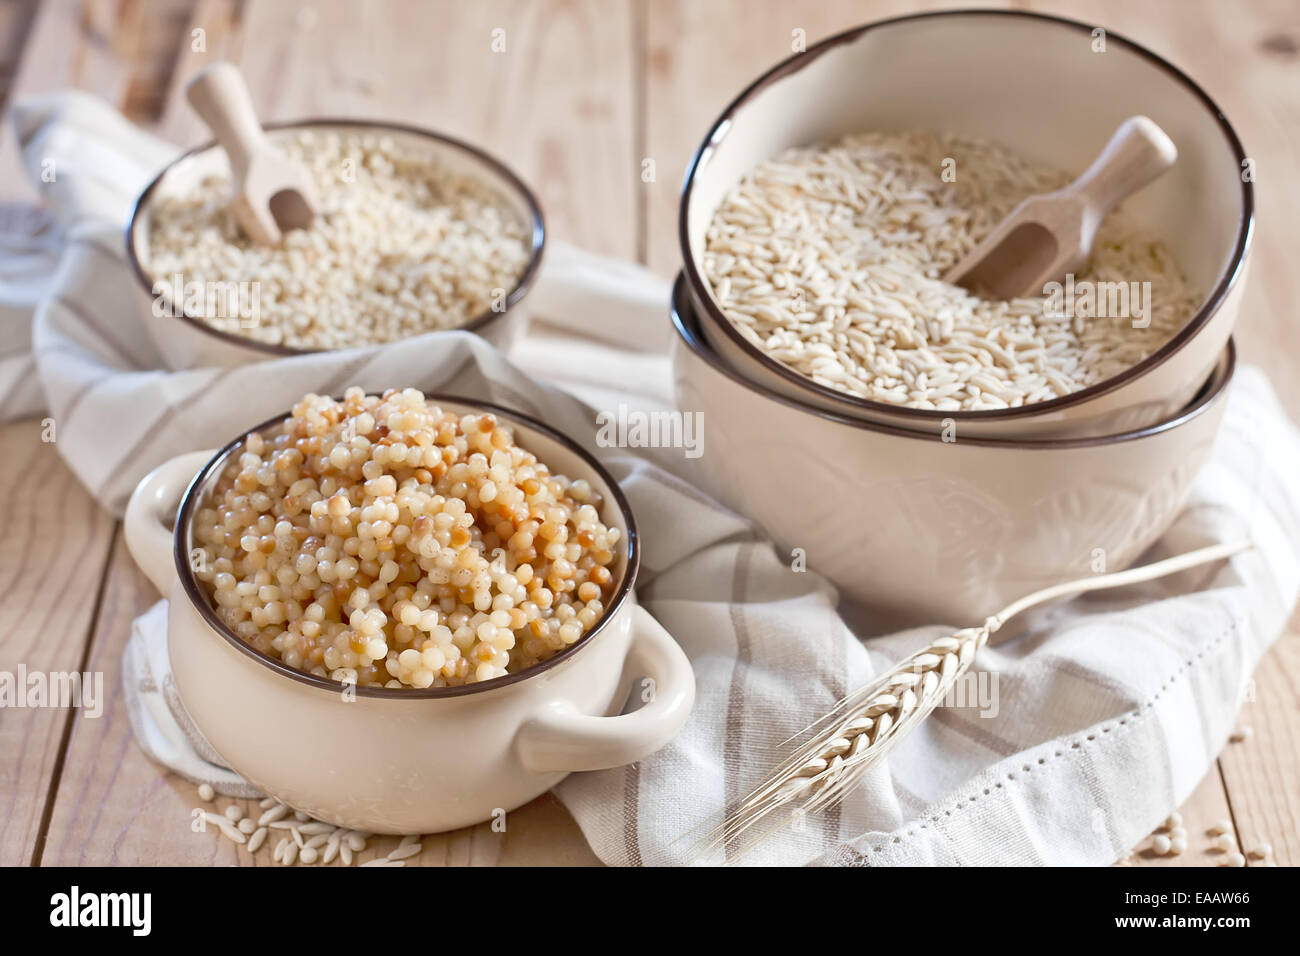 Ptititm or israeli couscous - kind of small pasta, traditional for israelian cuisine. Stock Photo